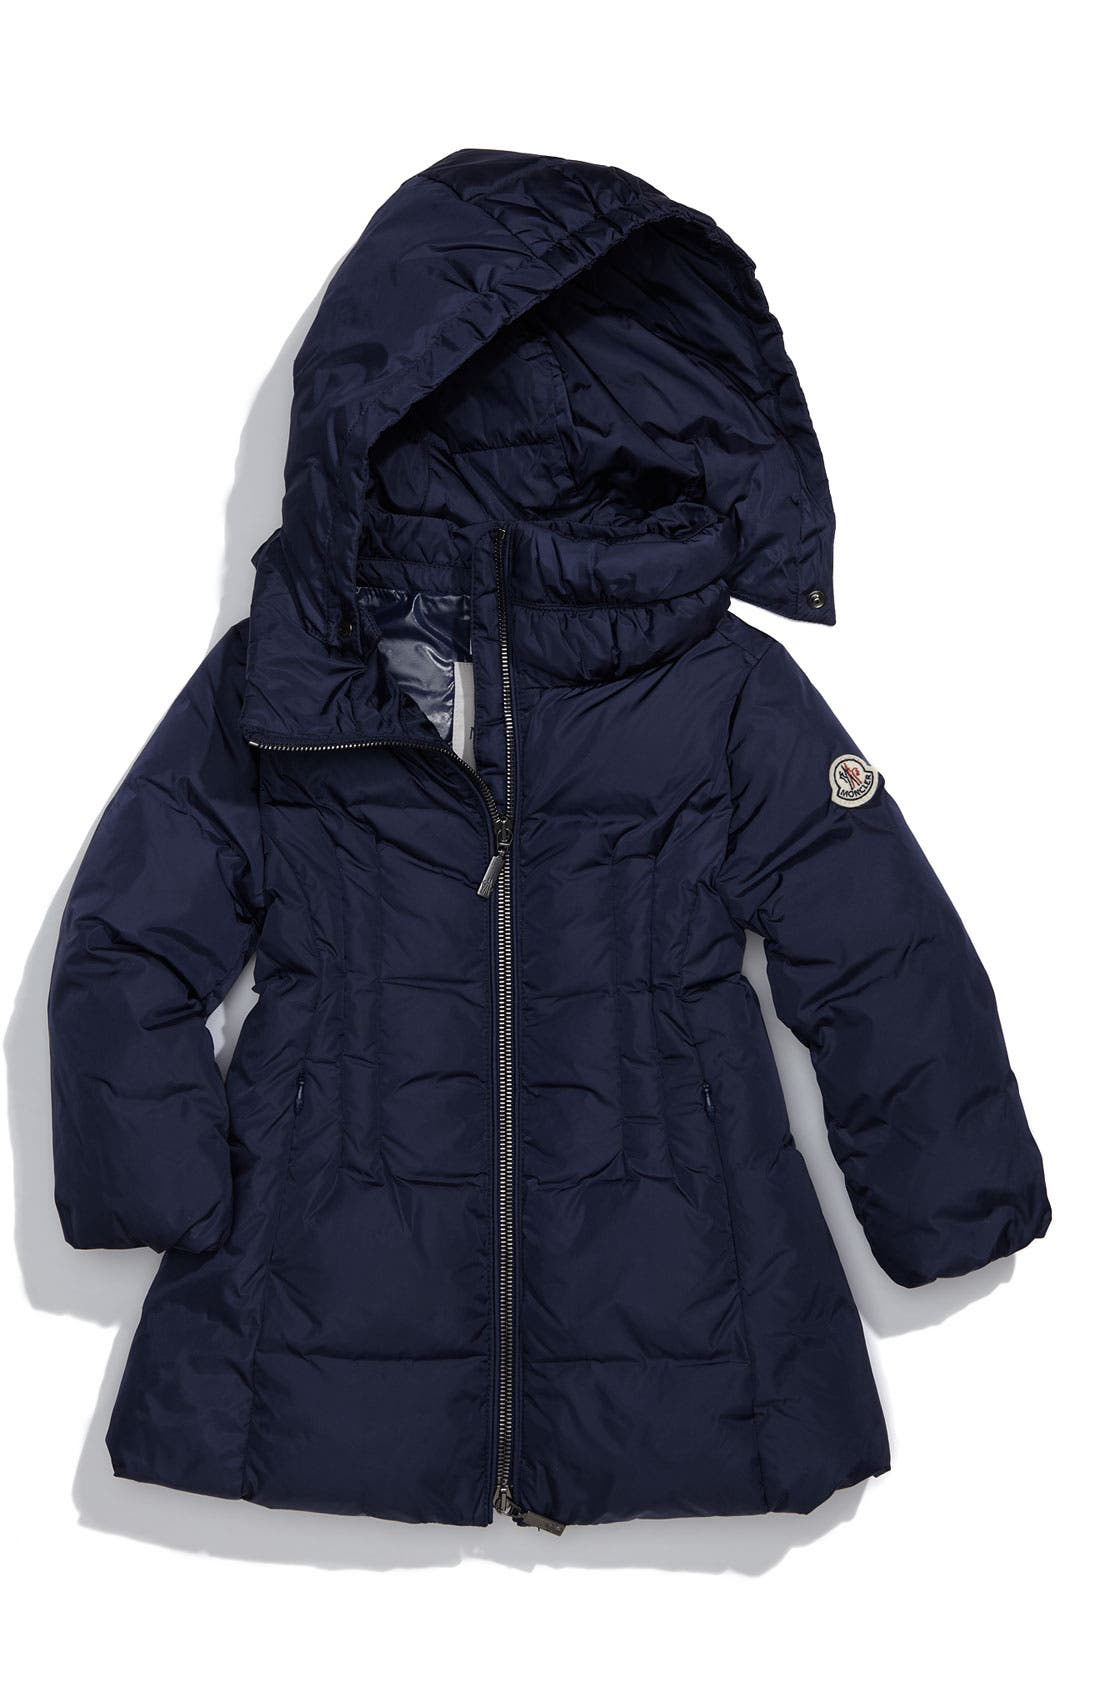 Main Image - Moncler Long Quilted Coat (Toddler)